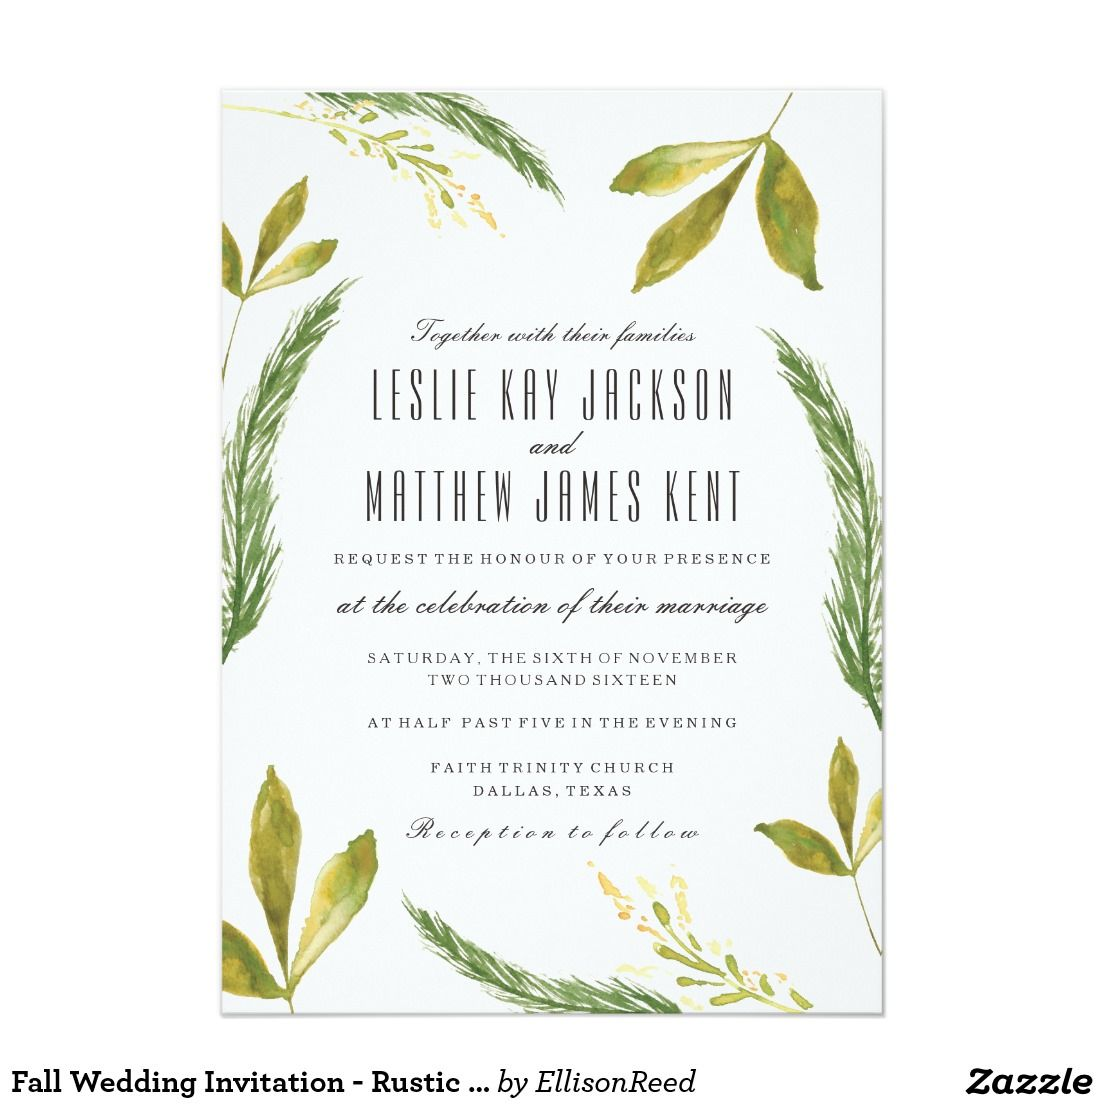 Fall Wedding Invitation - Rustic Harvest Greenery | Fall & Autumn ...